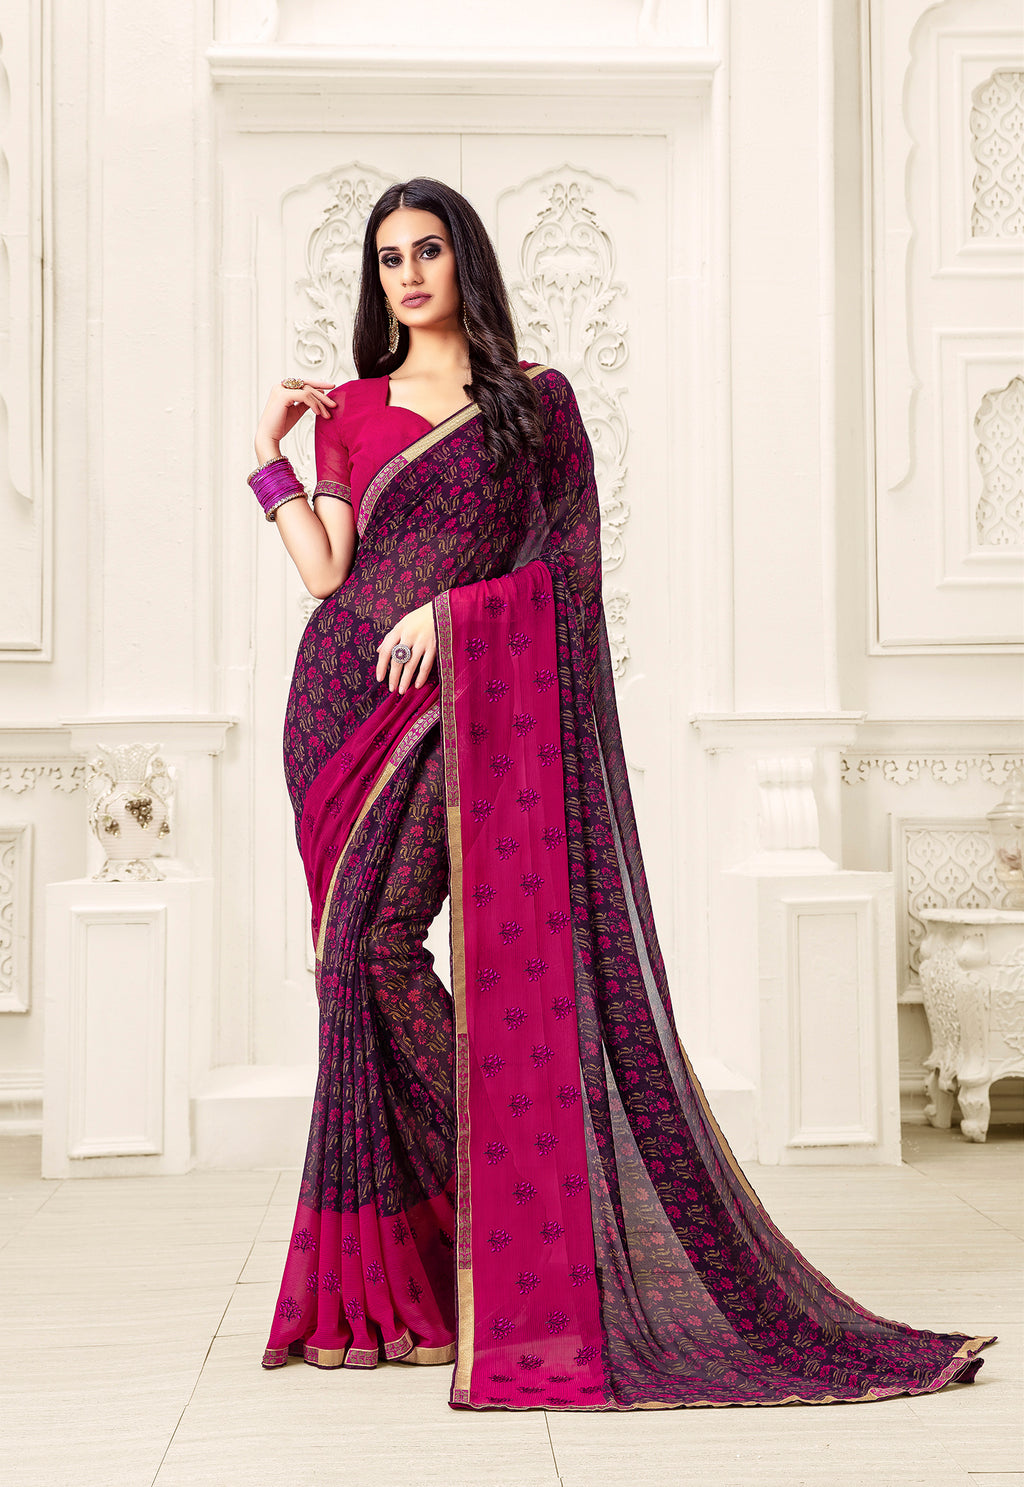 Sanskar Blossom  Printed Georgette  Saree With Blouse Piece  (Maroon) By Indians Boutique